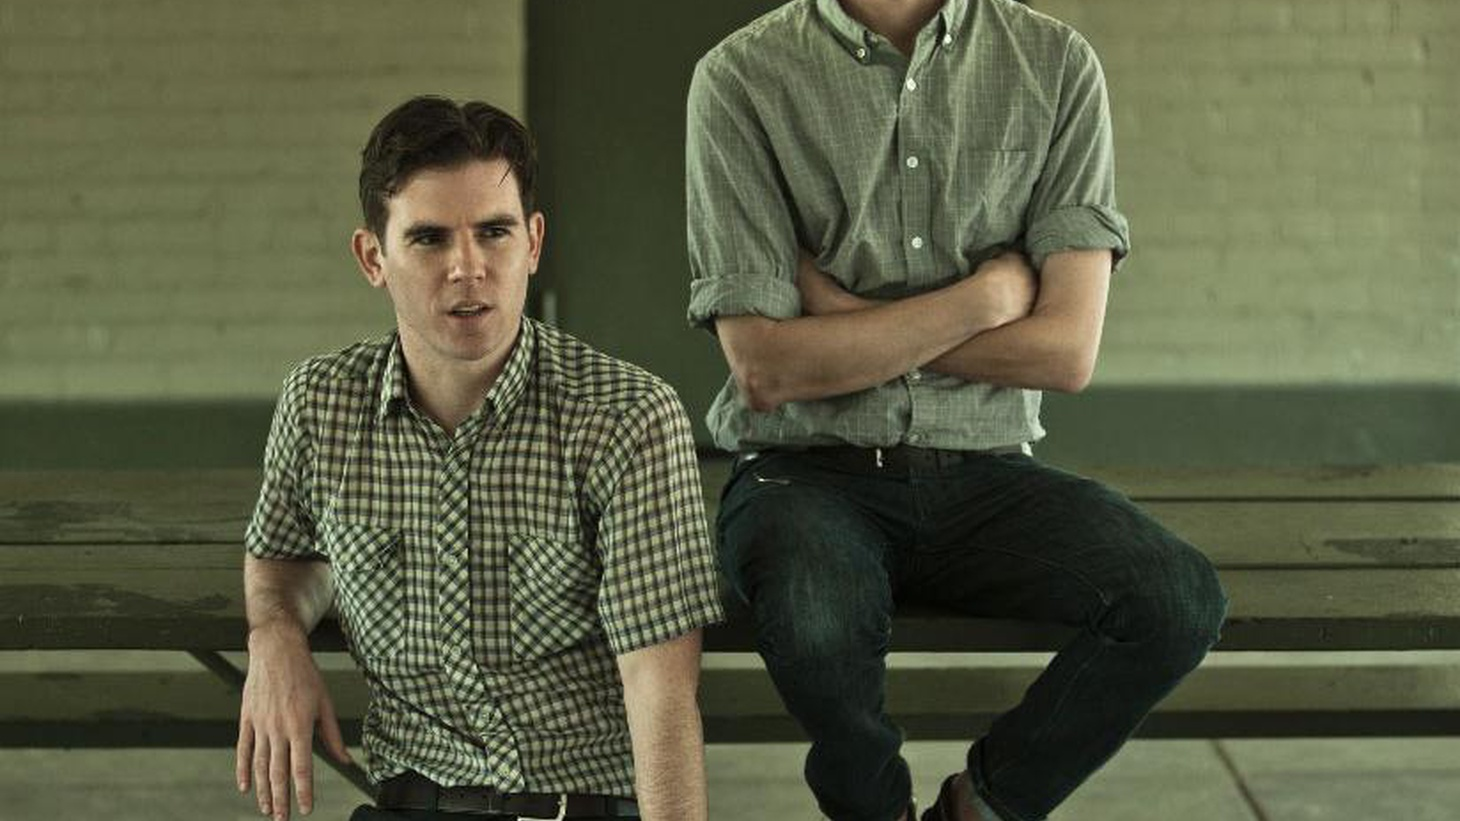 New Orleans' finest pop outfit, Generationals, offers upbeat tunes with a retro twist...